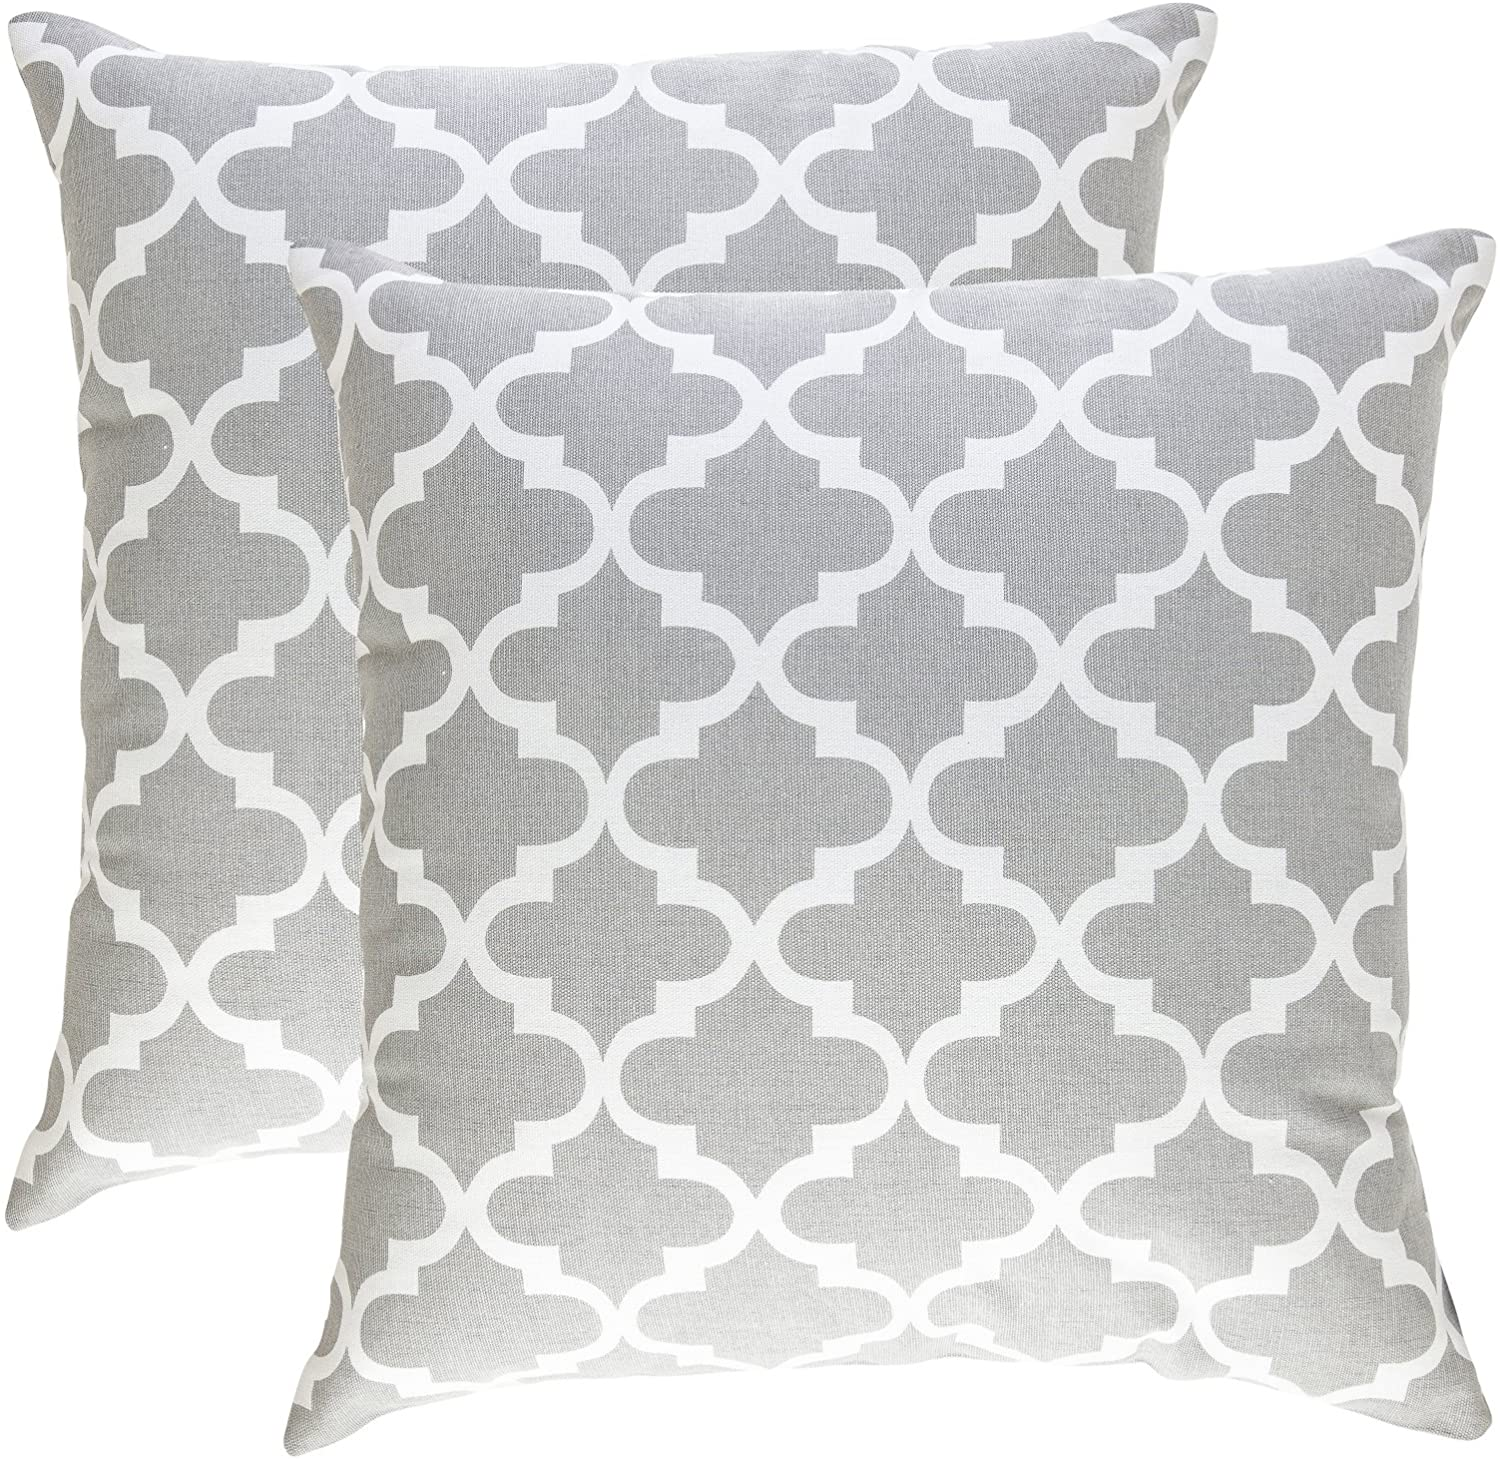 TreeWool, Pack of 2, Throw Pillow Cover Moroccan Trellis Accent 100% Cotton Decorative Square Cushion Cases (20 x 20 Inches / 50 x 50 cm; Silver Grey & Off-White)